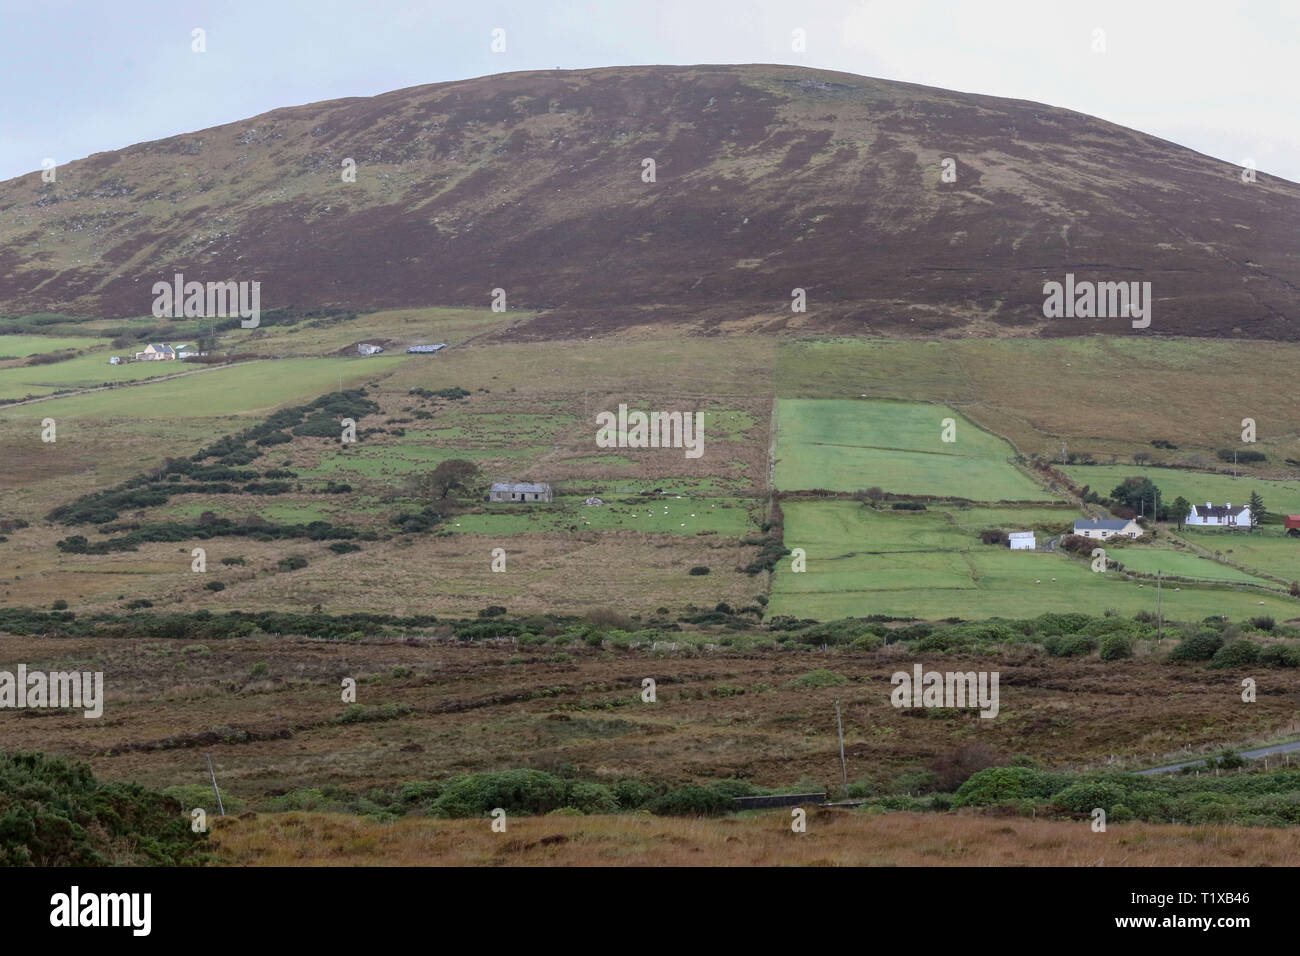 Hill fields cottages and bogland in rural Ireland near Ballycroy, County Mayo. - Stock Image